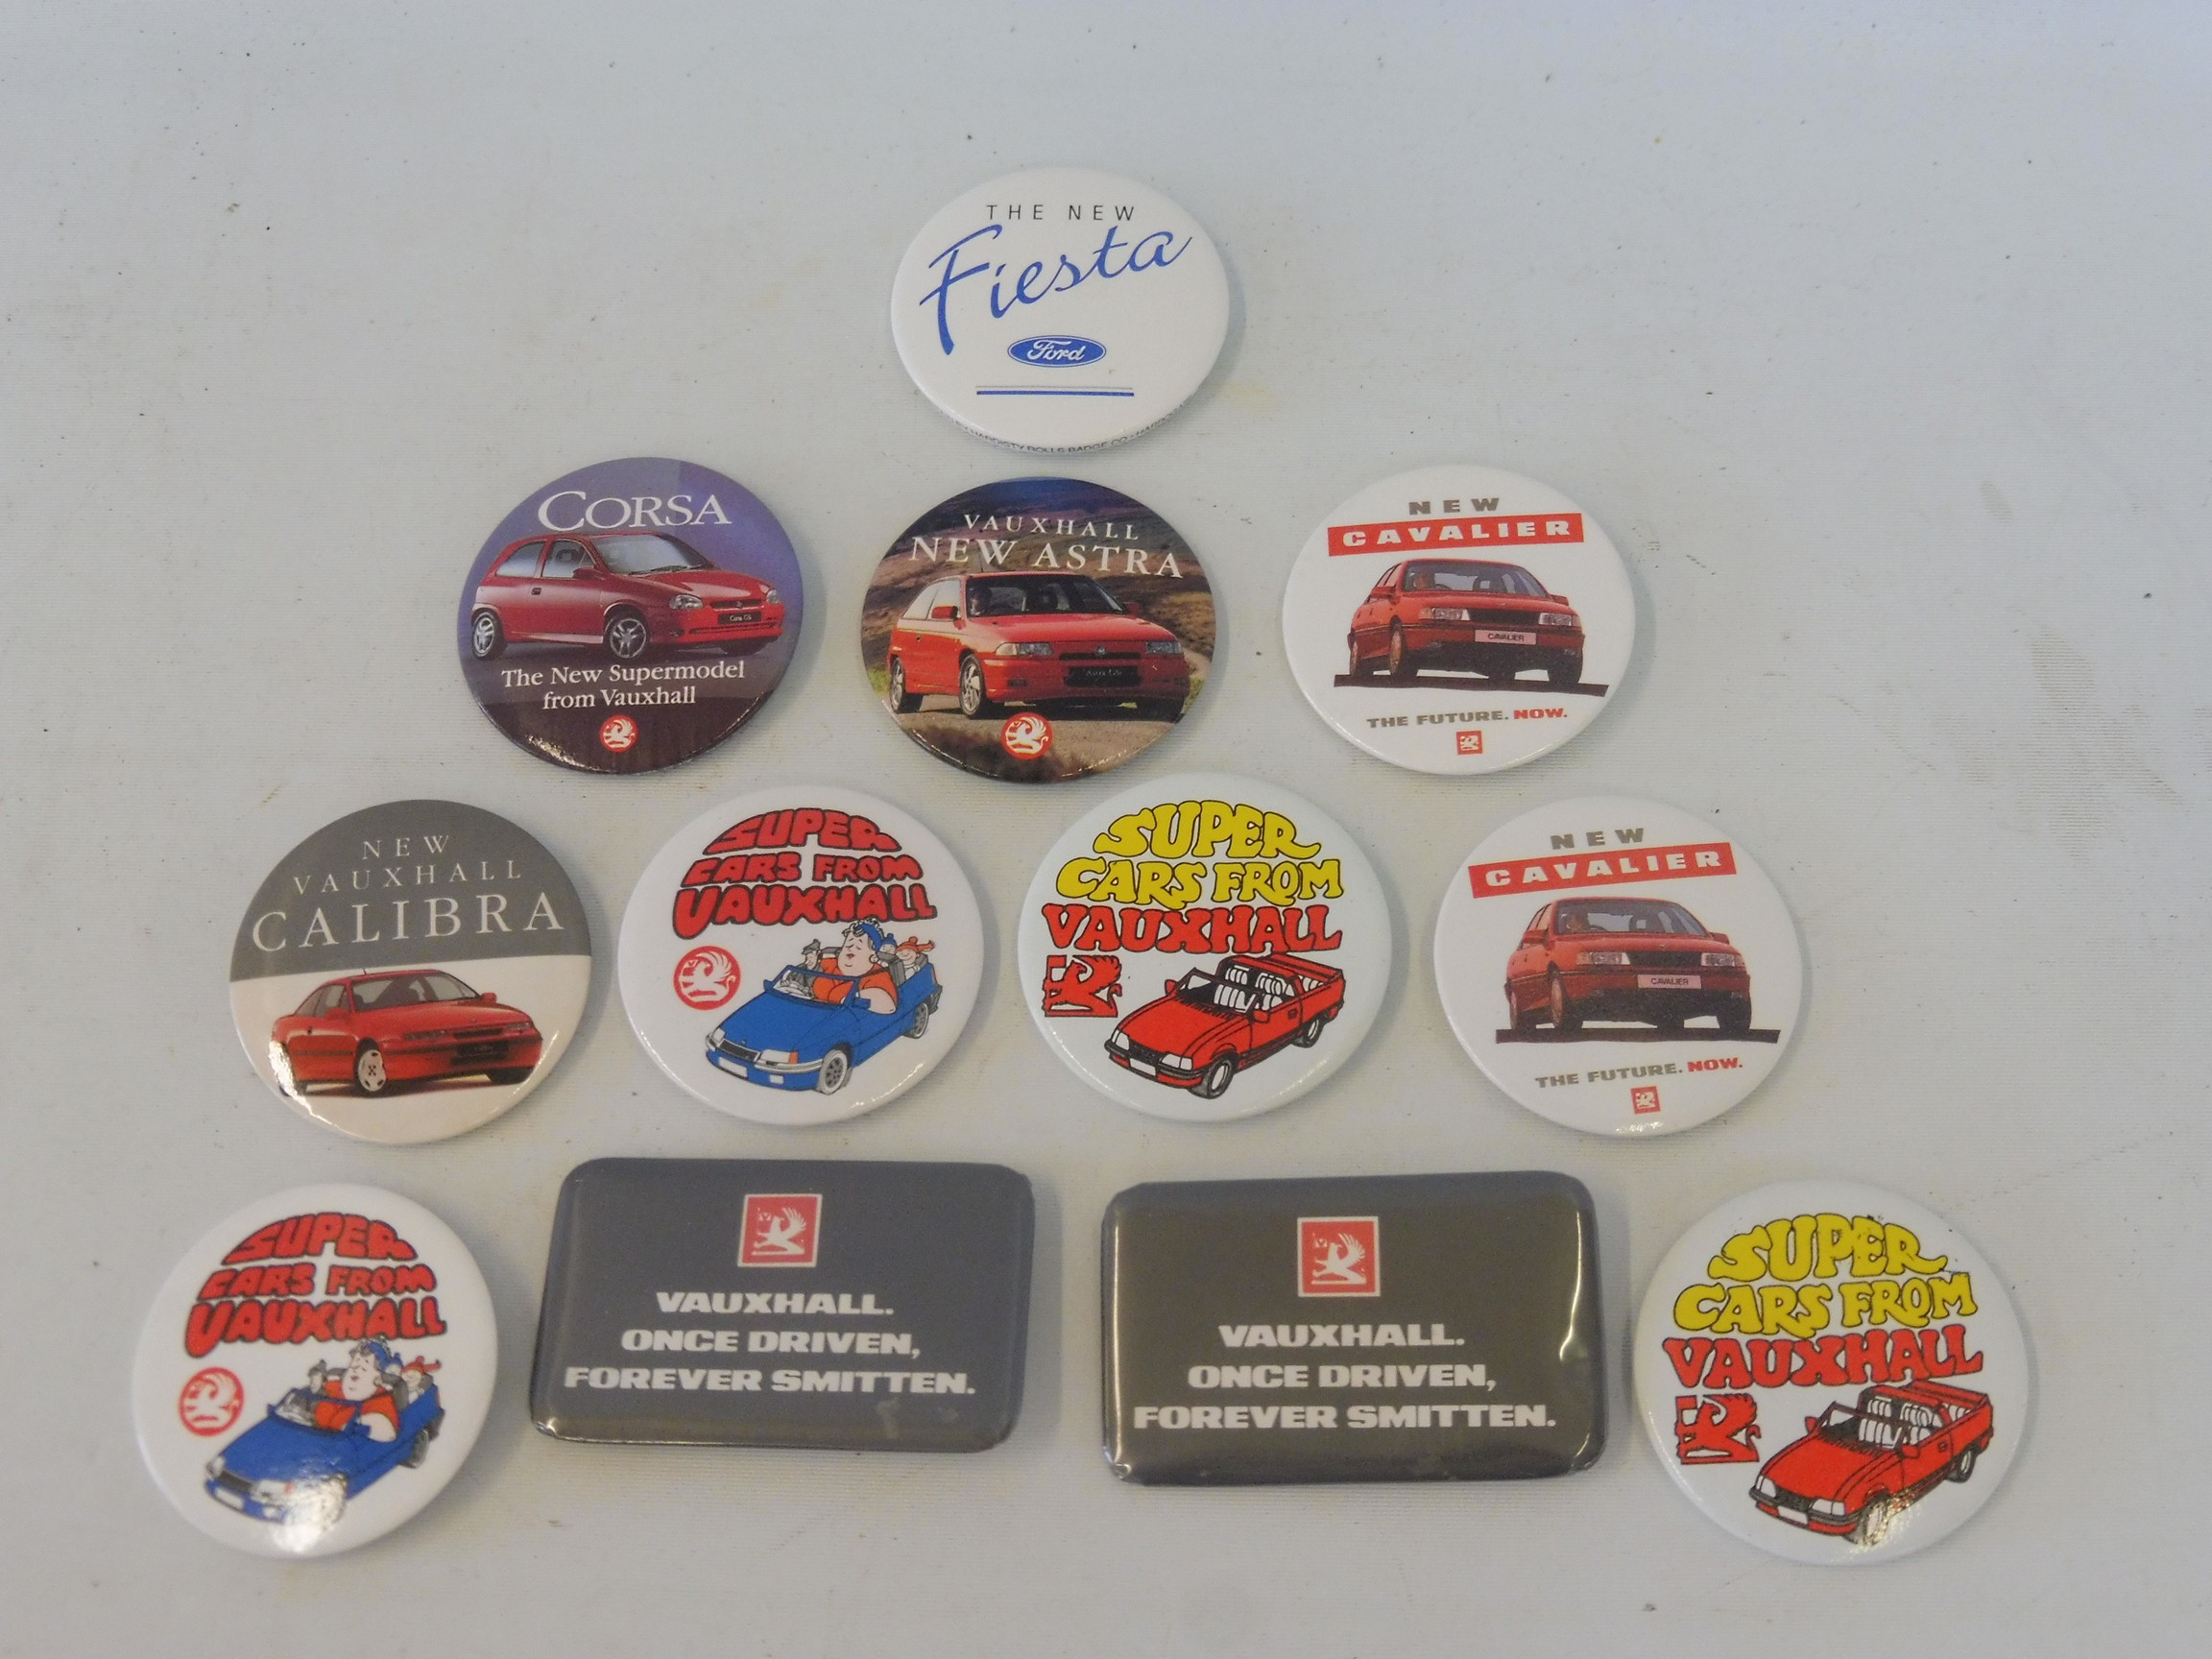 A collection of motoring related promotional badges for Ford and Vauxhall motor cars.